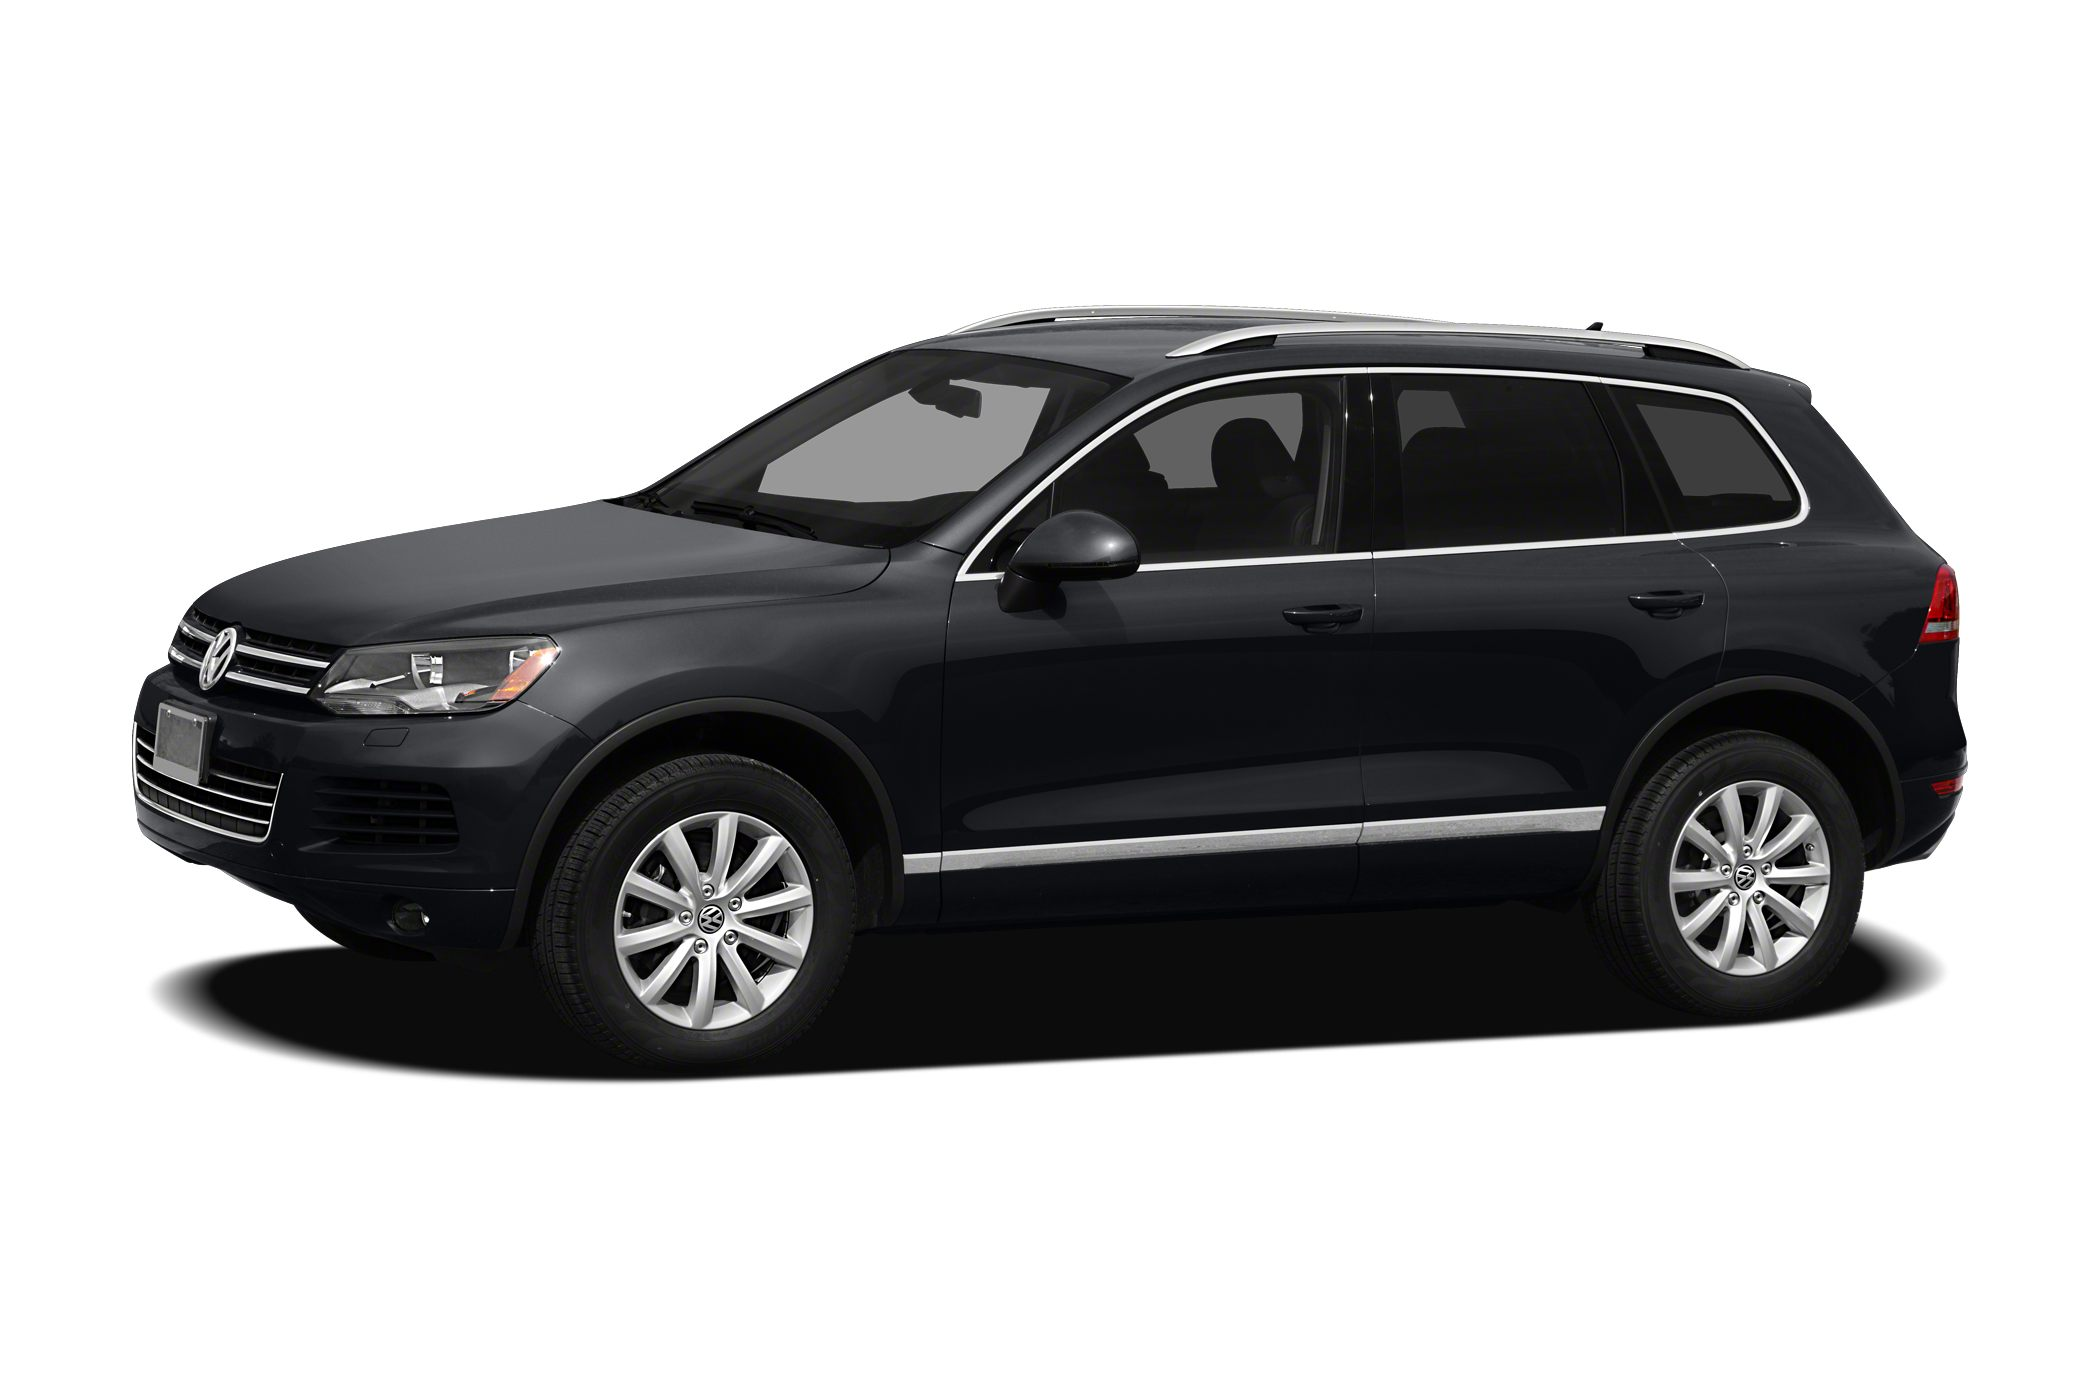 2011 Volkswagen Touareg Tdi Lux 4dr All Wheel Drive 4motion Pricing And Options